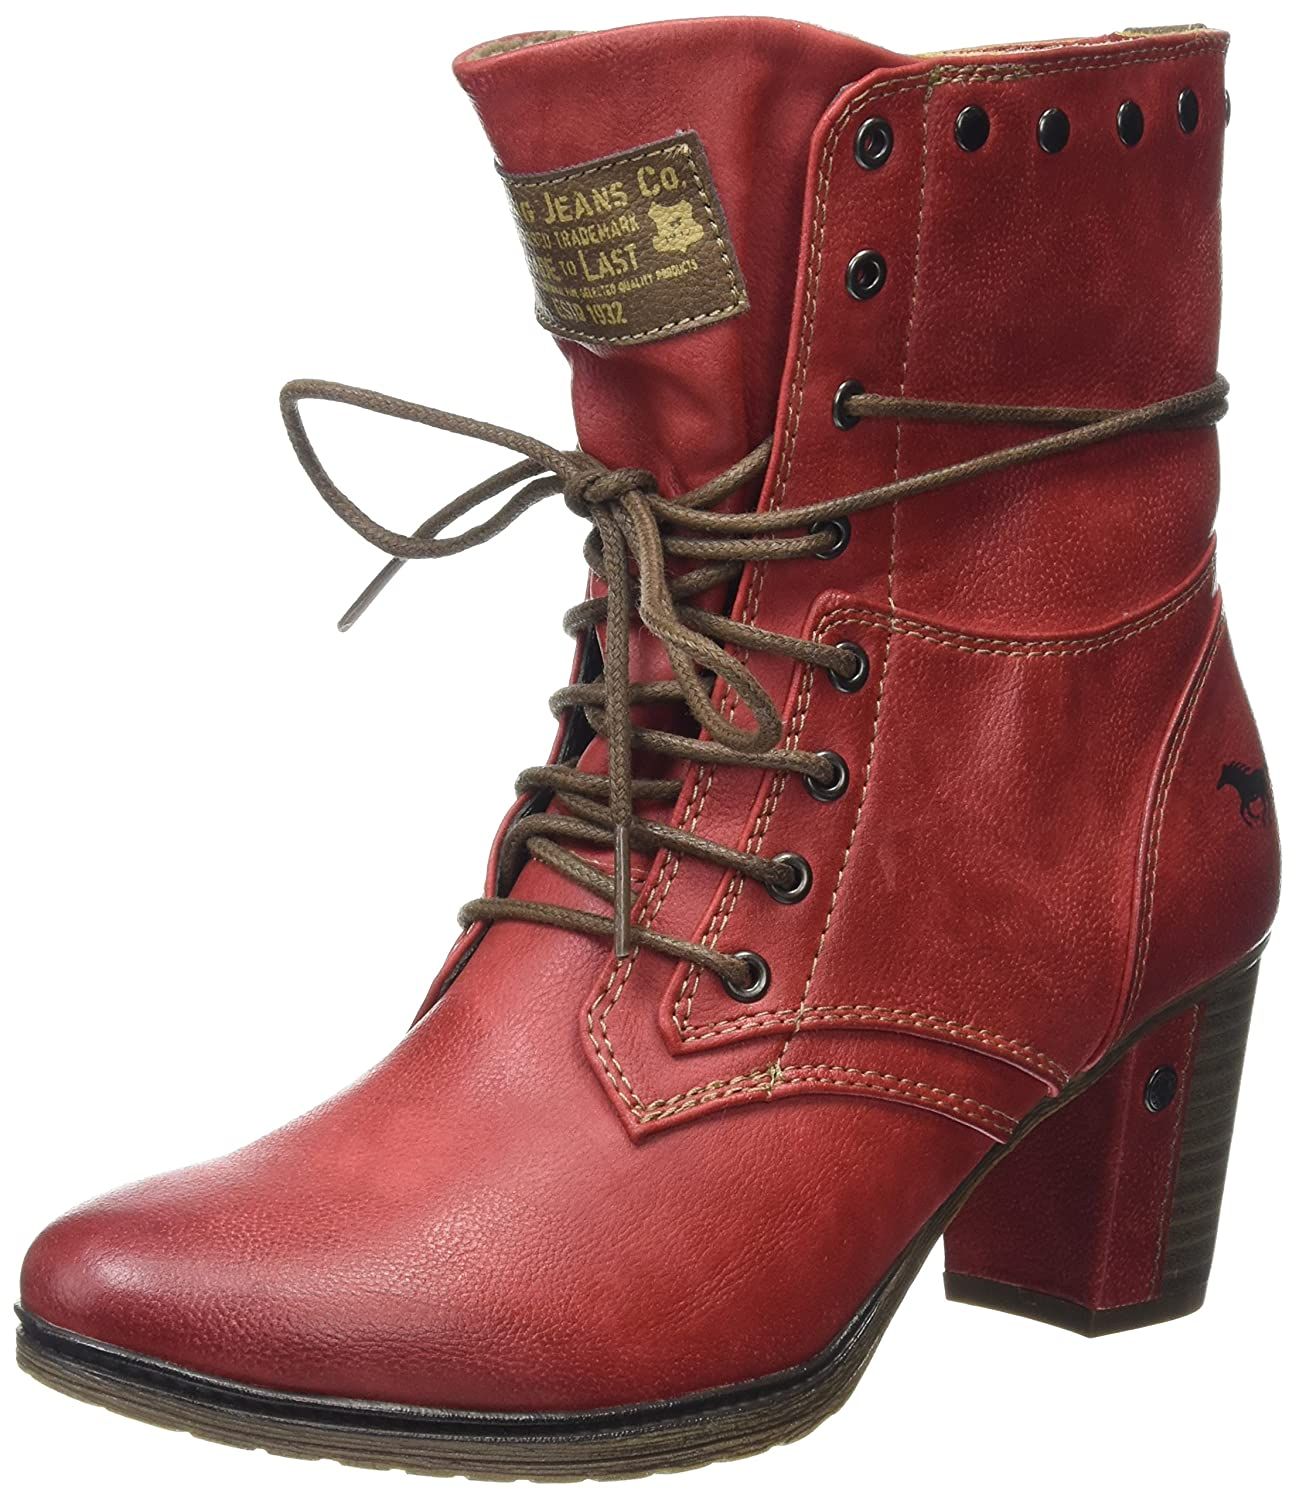 Mustang 1199-505, Bottes Femme Rouge Mustang Rouge Femme (Rot) f2558d0 - piero.space